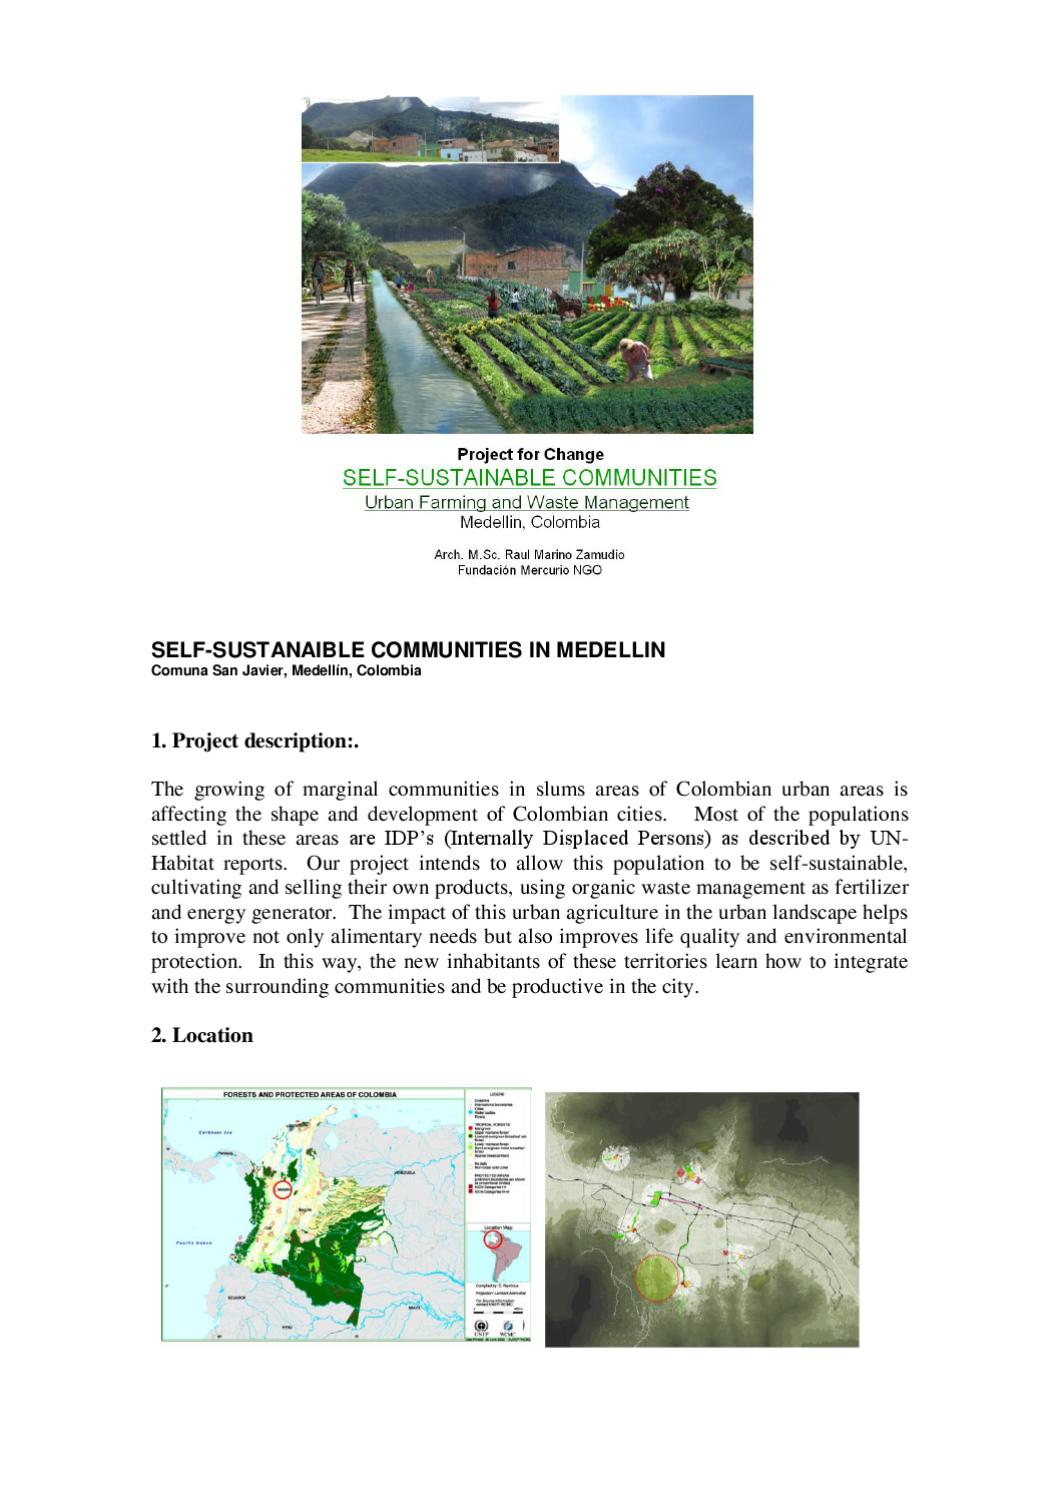 Self-sustainable communties Urban Farming u0026 Waste Management programms in Medellin Colombia by ...